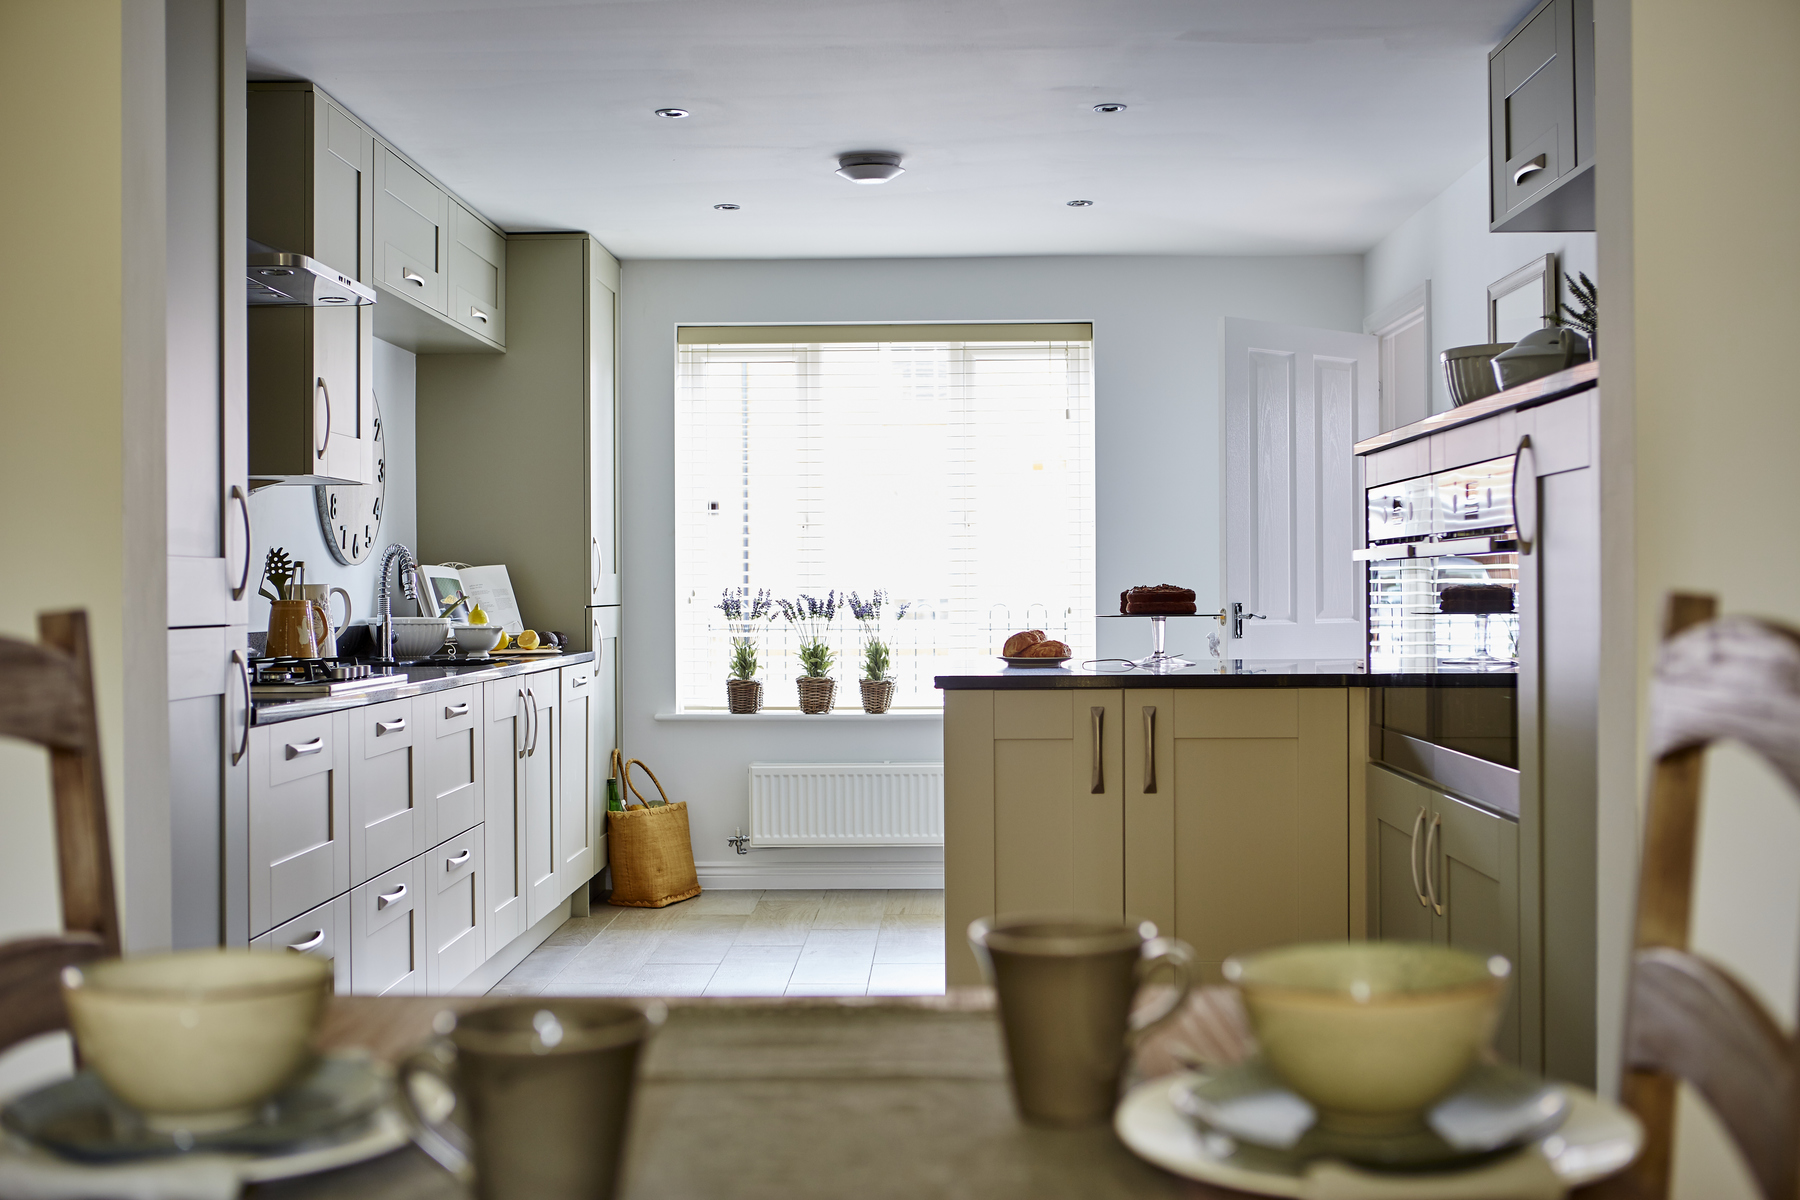 tw_westmids_nursery_meadow_pa49_thornford_kitchen_2